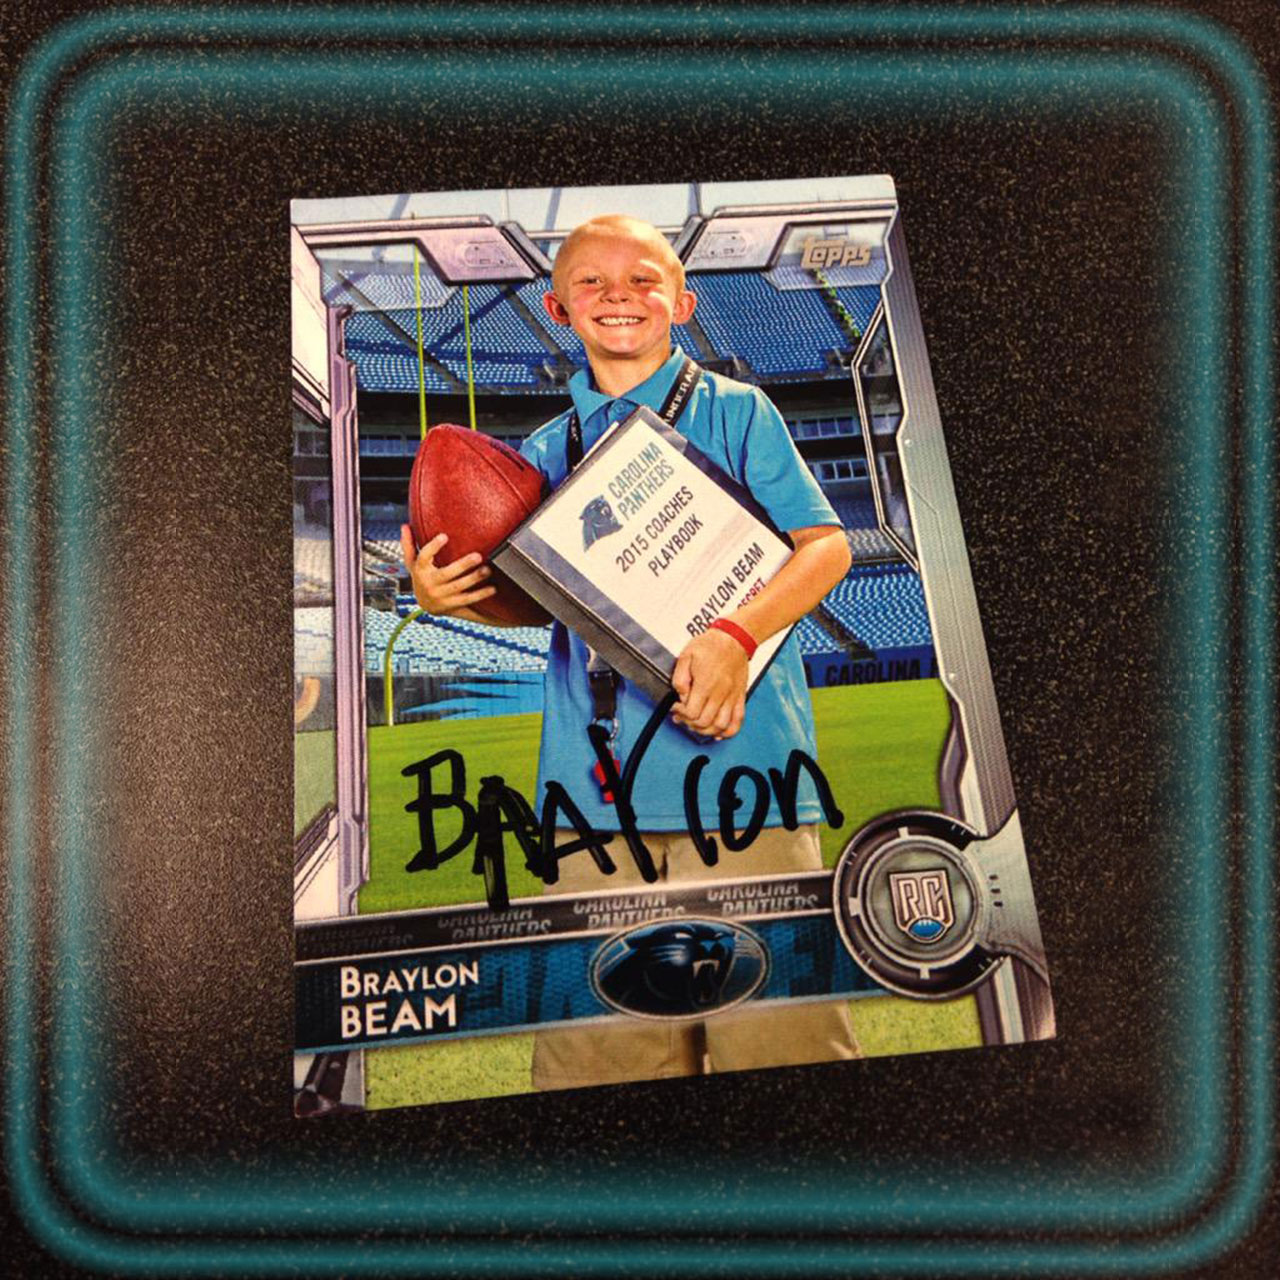 Carolina Panther honorary coach Braylon Beam got his own Topps football card